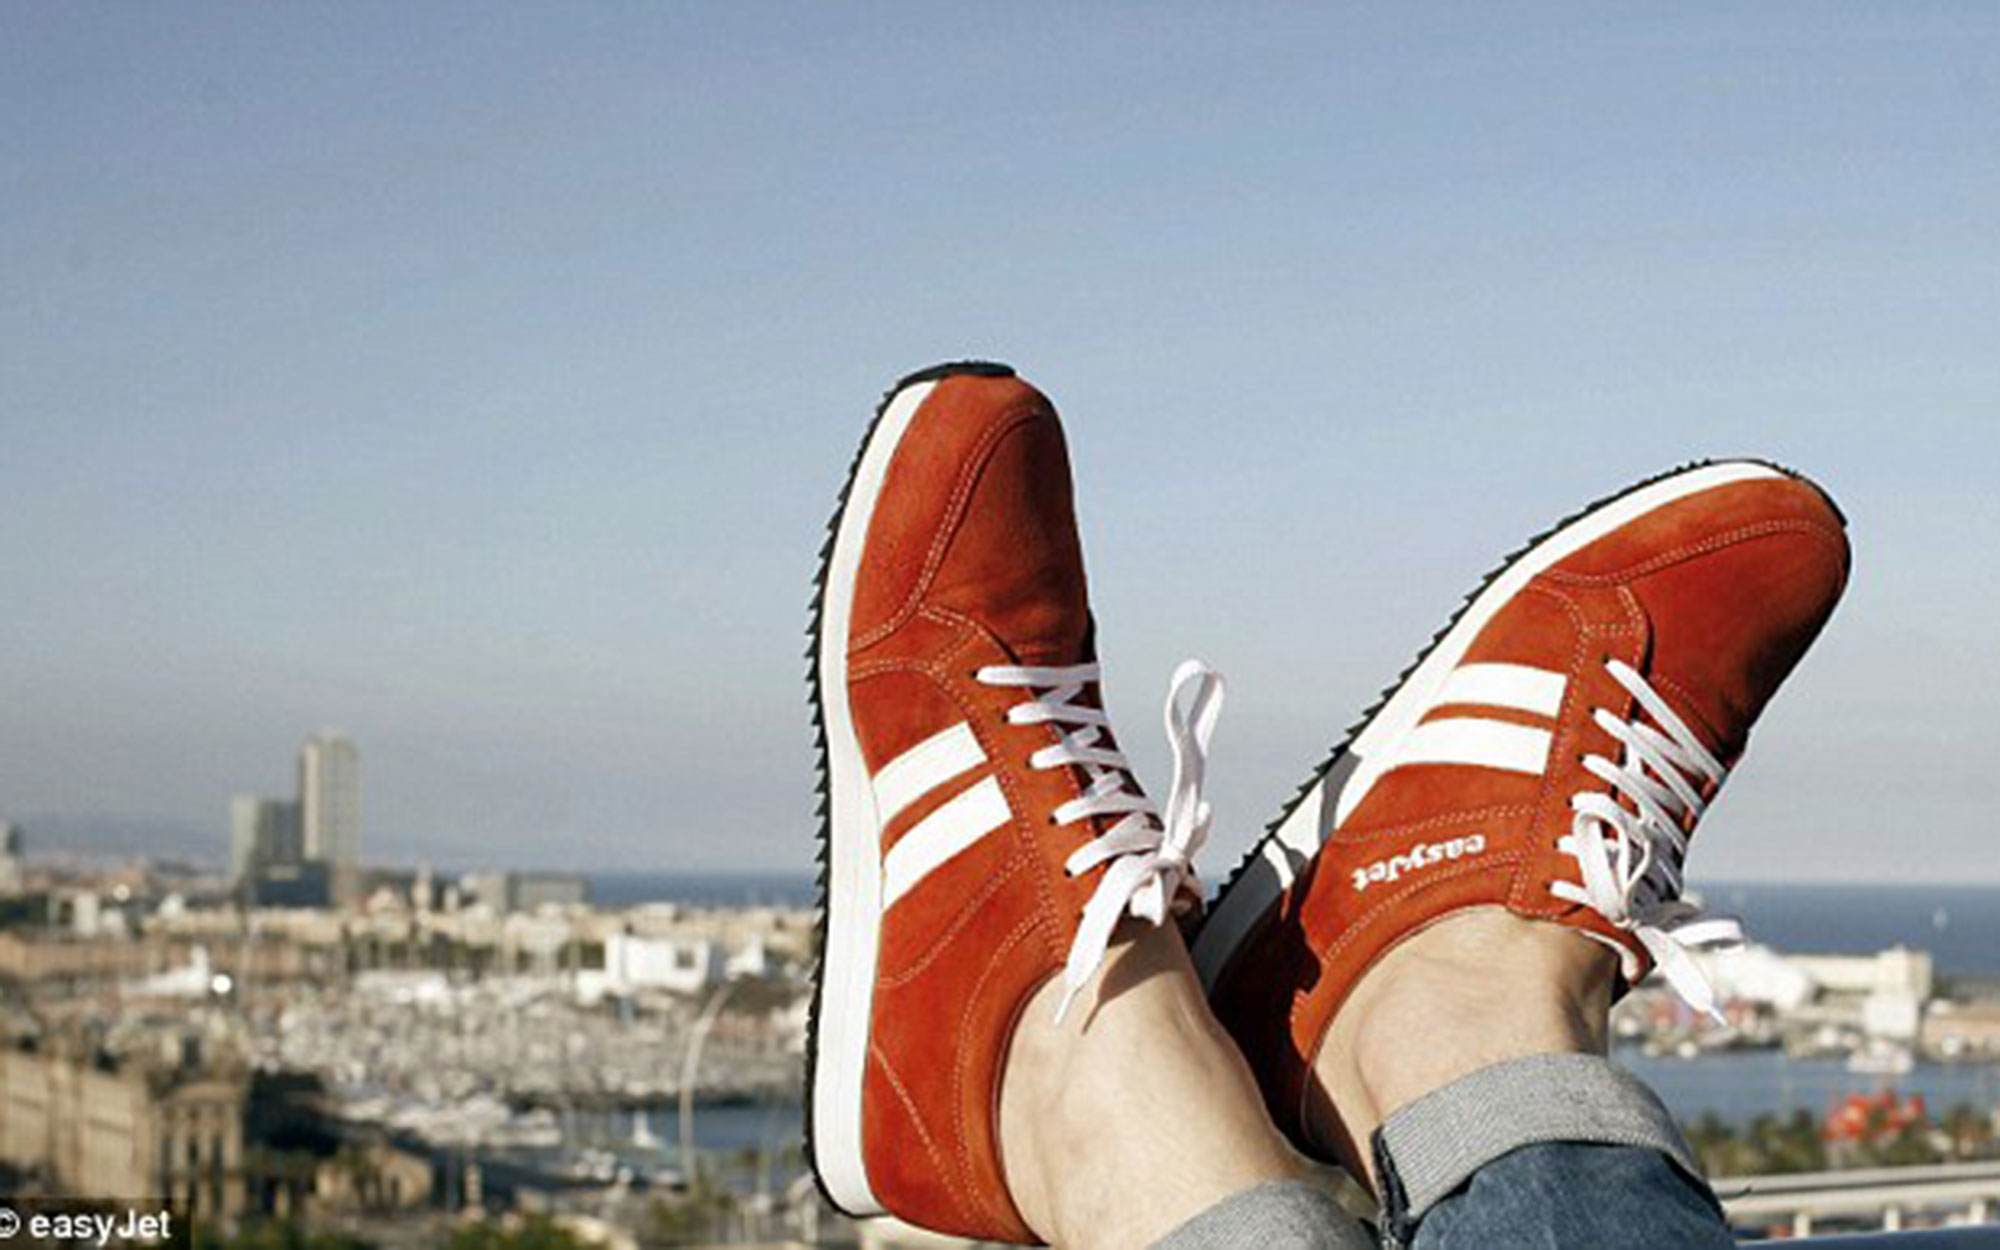 EasyJet Develops a Vibrating Smart Shoe to Help You Navigate a New City